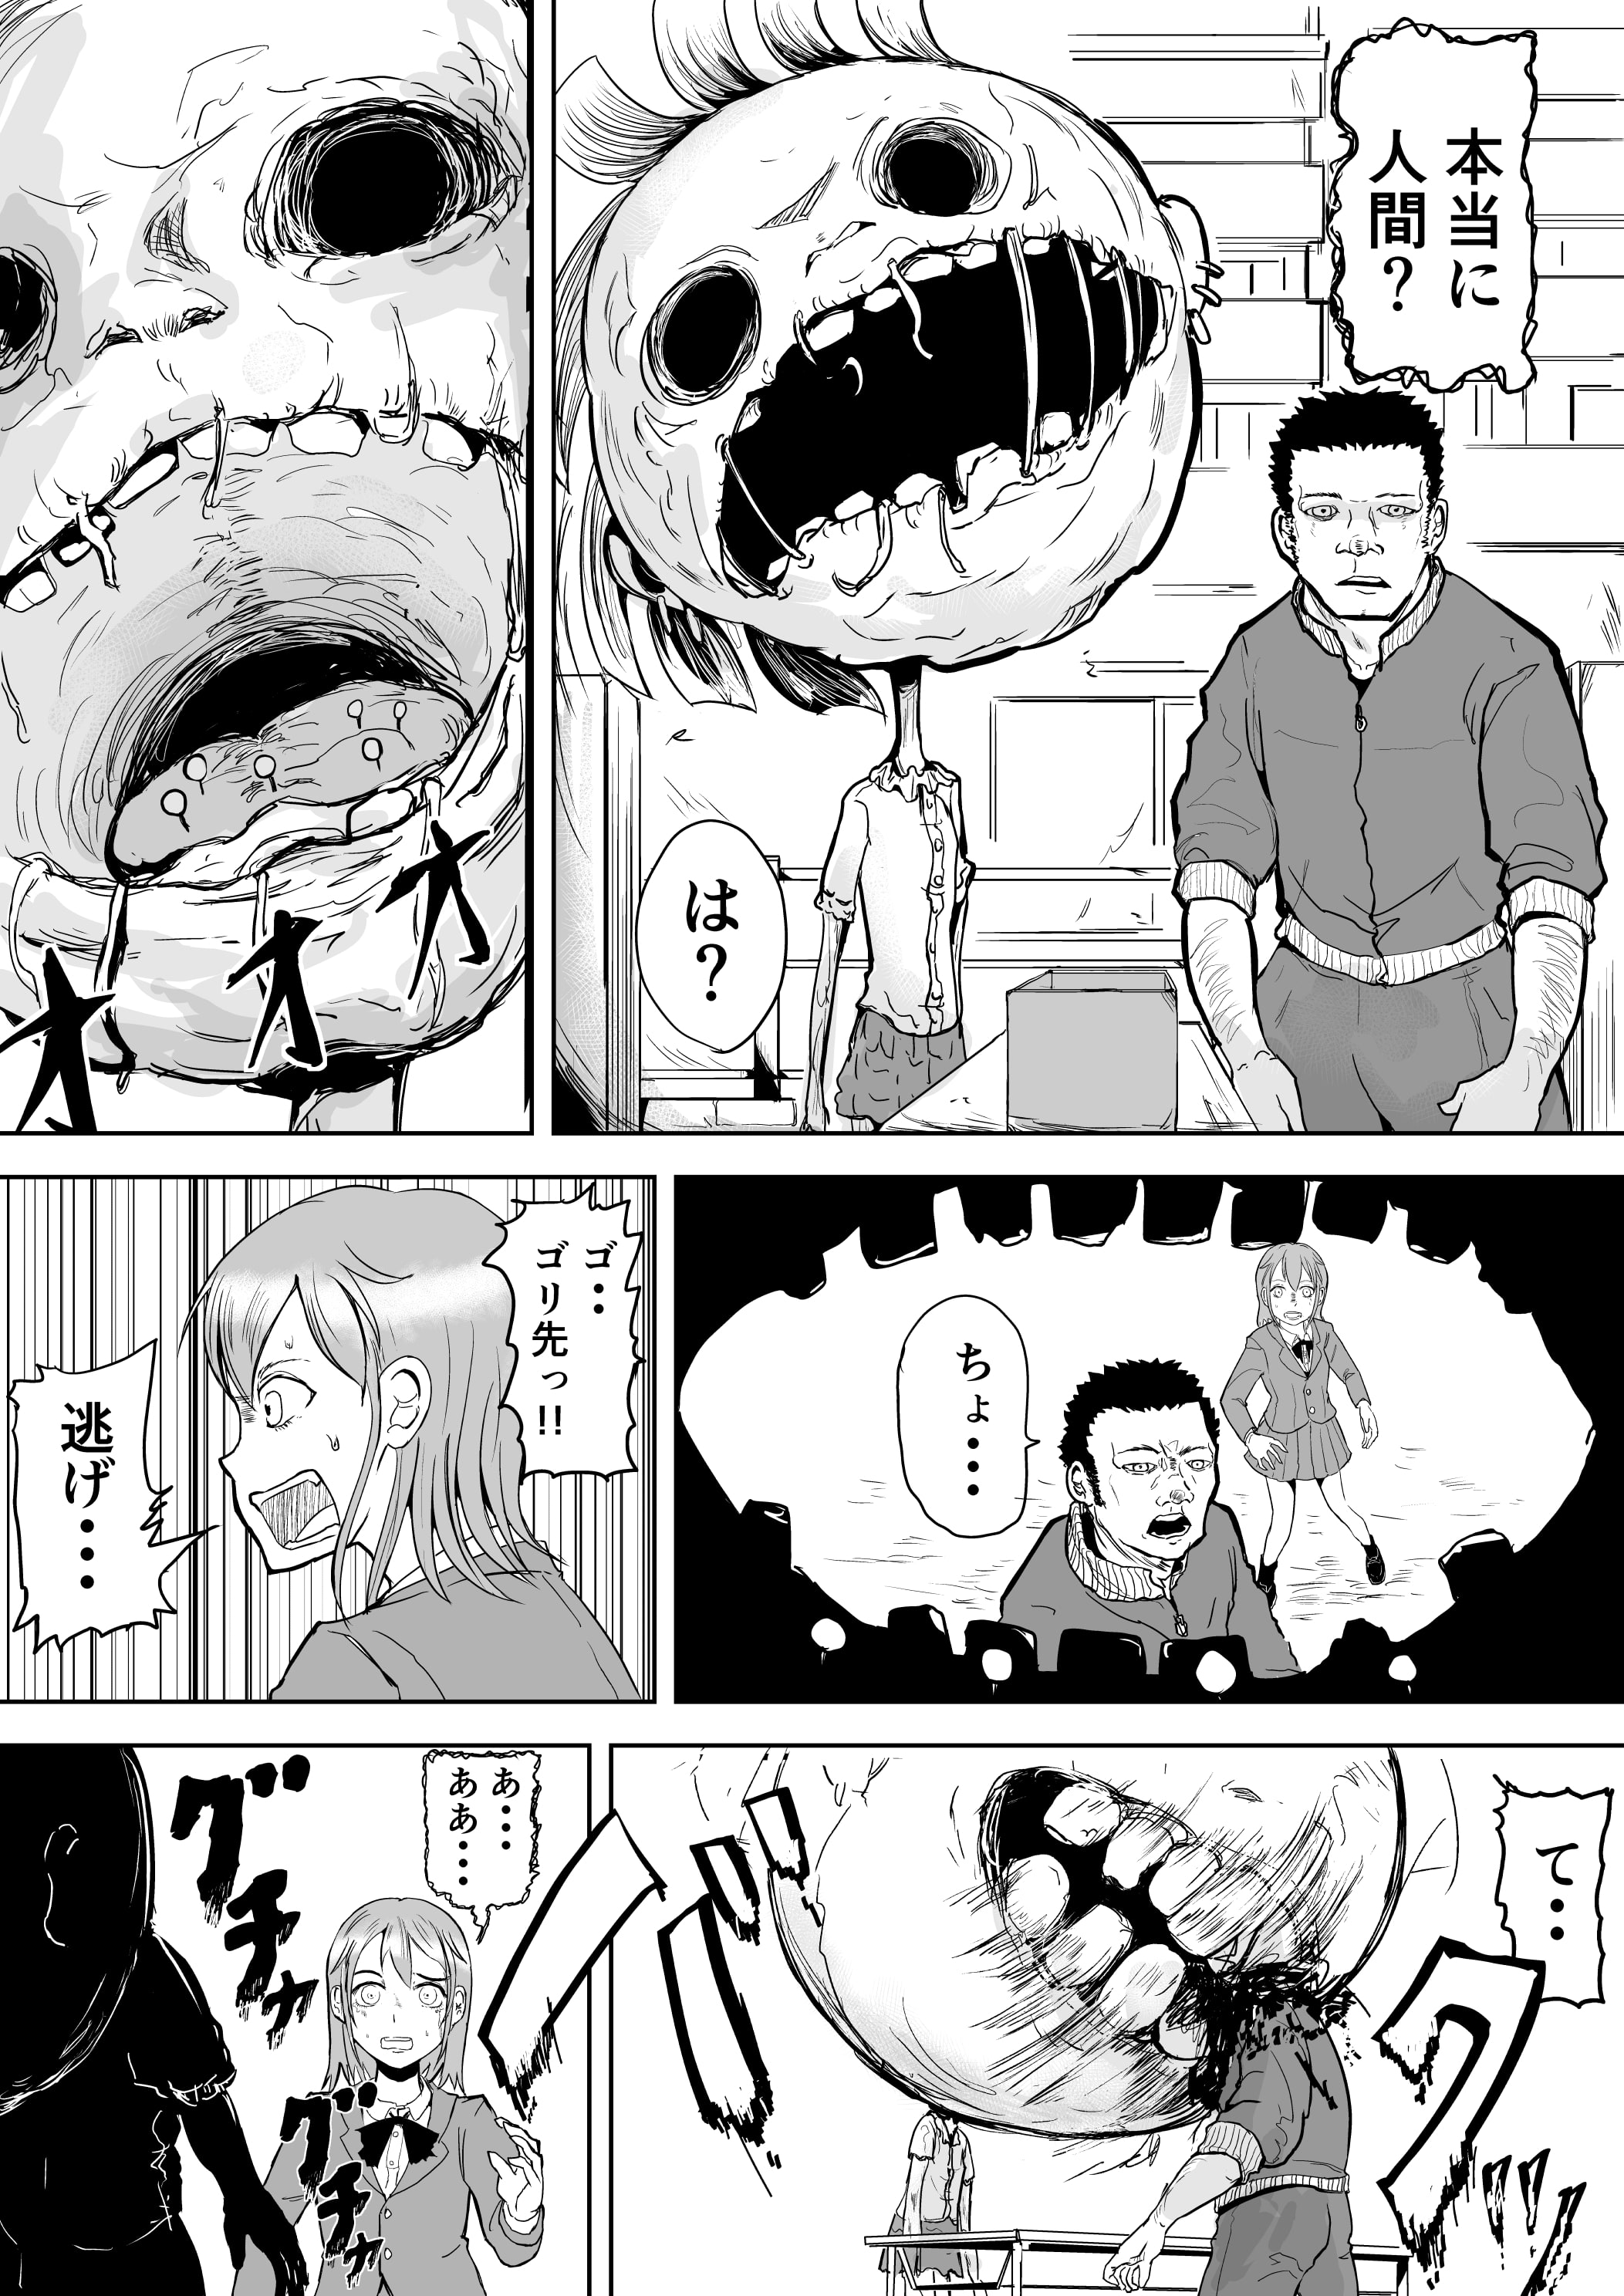 A manga about the kind of PE teacher who dies at the start of a school horror film